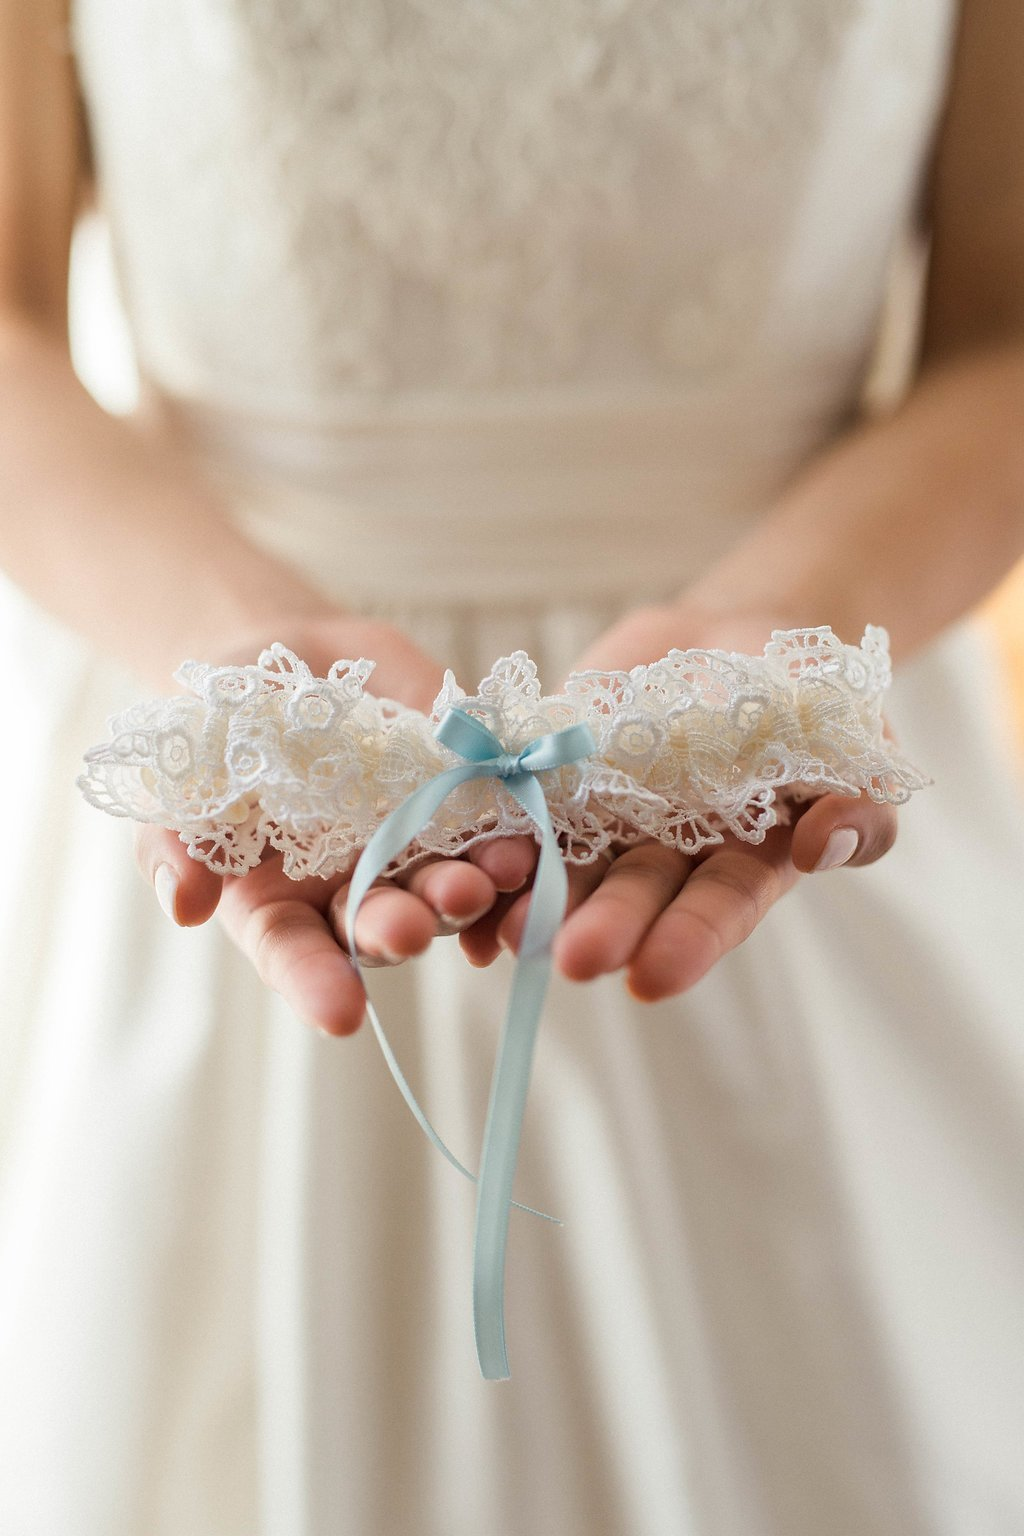 Lace Bridal Garter w Blue, Something Blue Gift For Bride, Wedding Heirloom Lace Garter.jpg